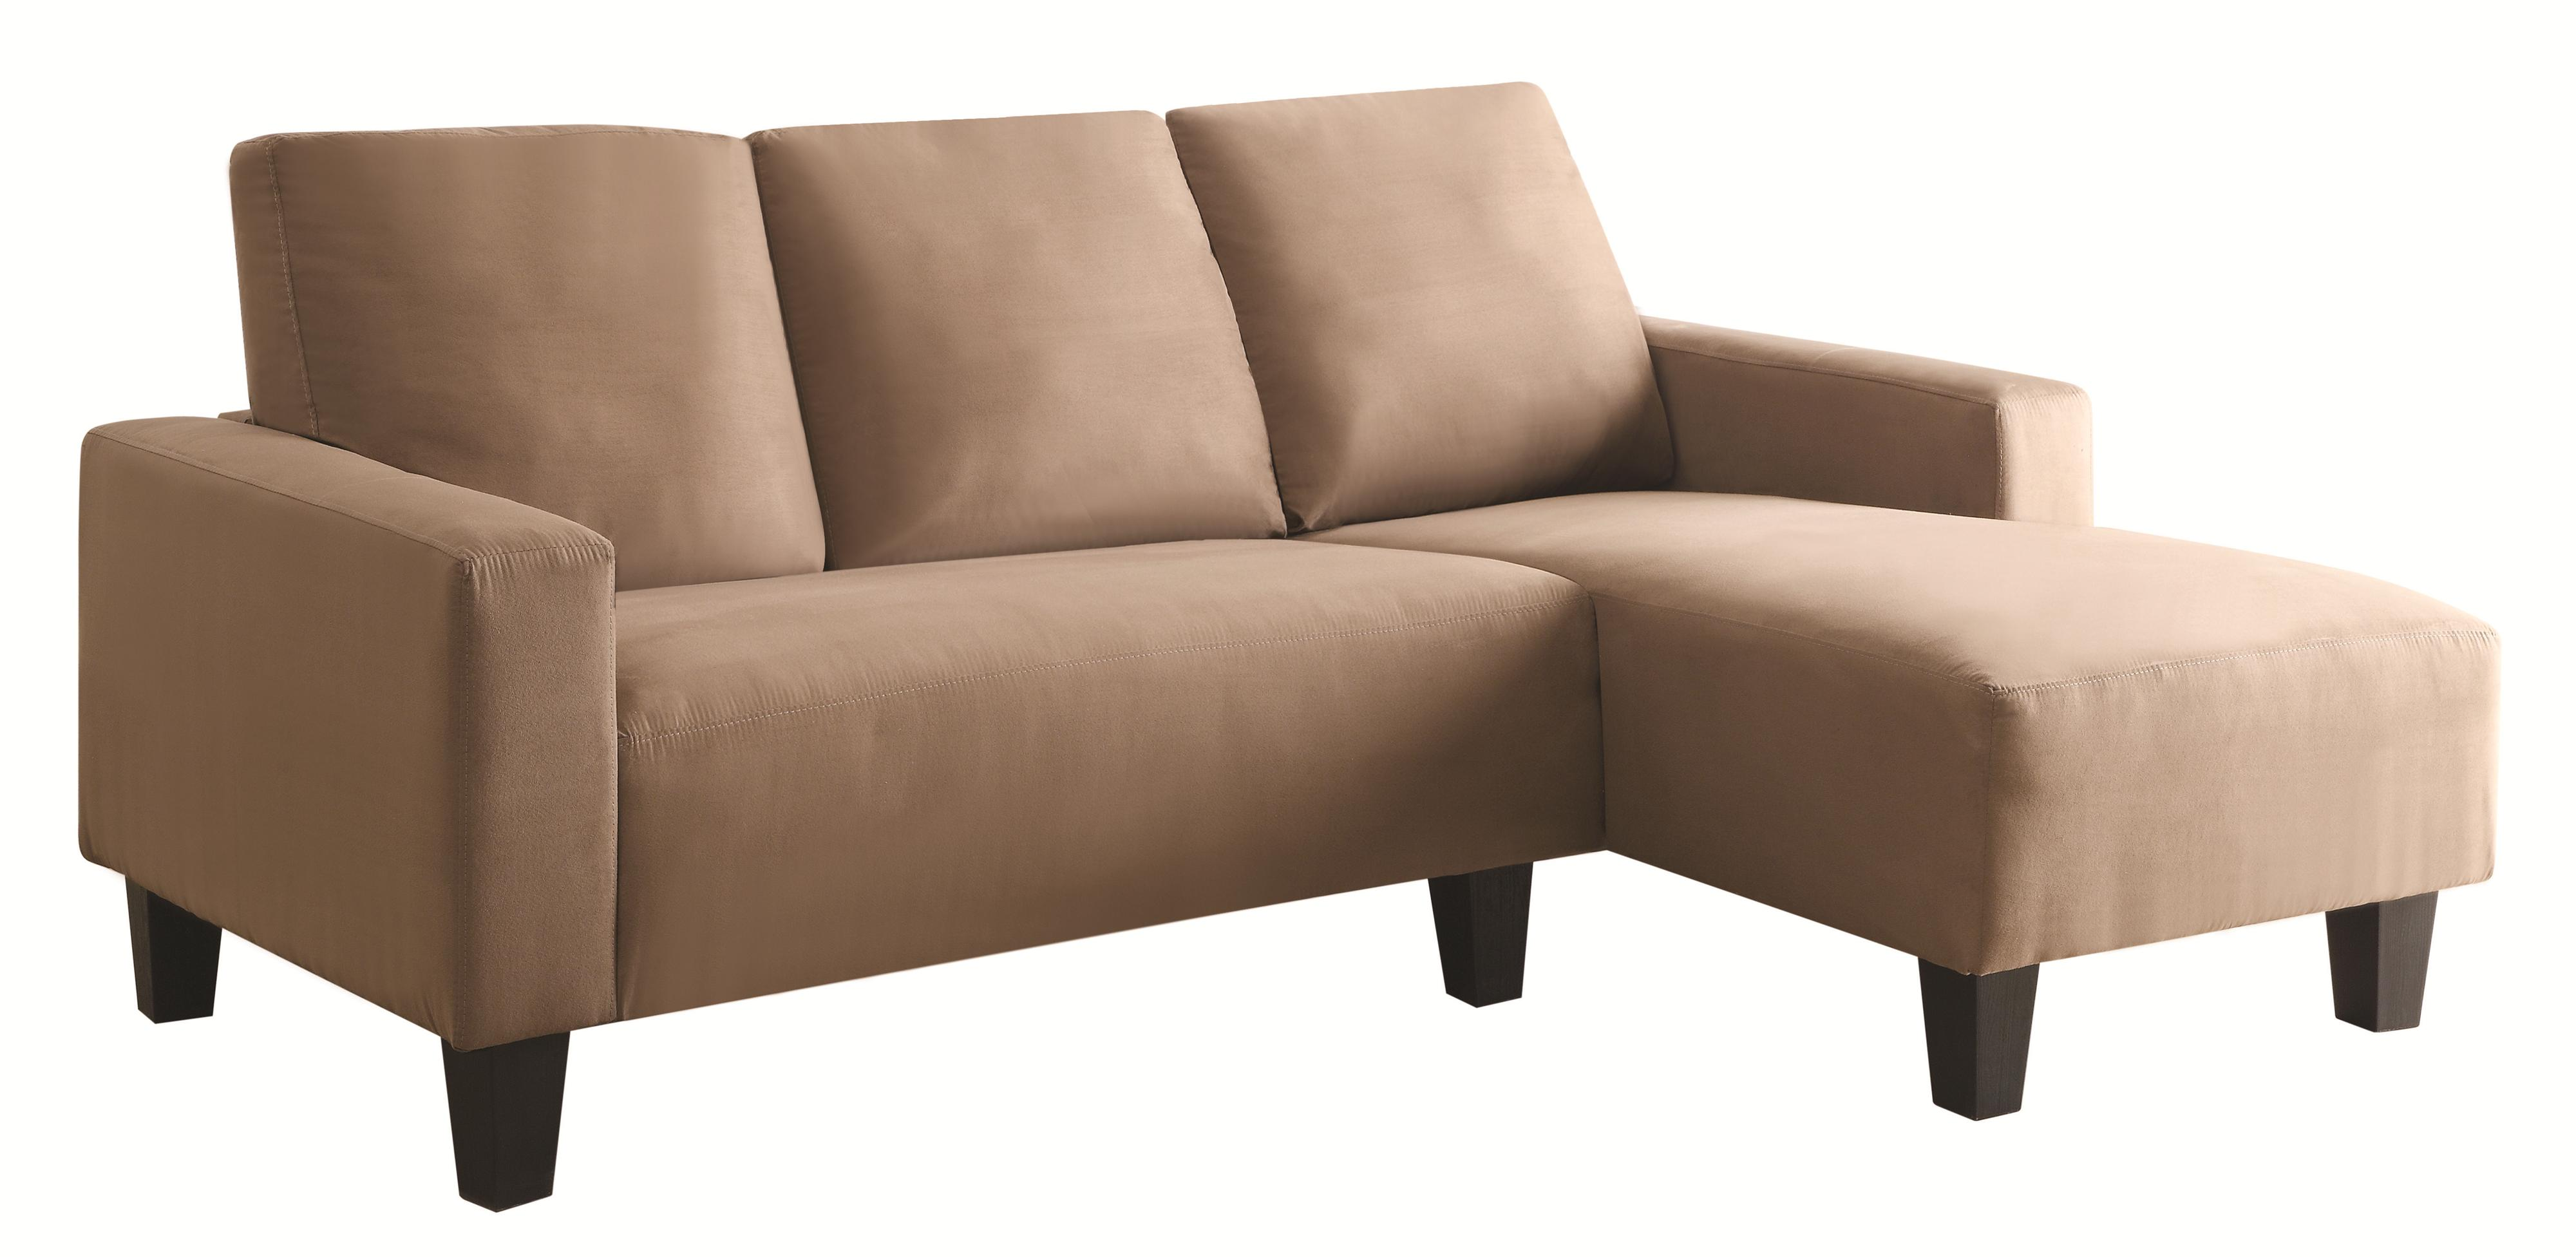 Image Result For Sofa Chaise Lounge Cover